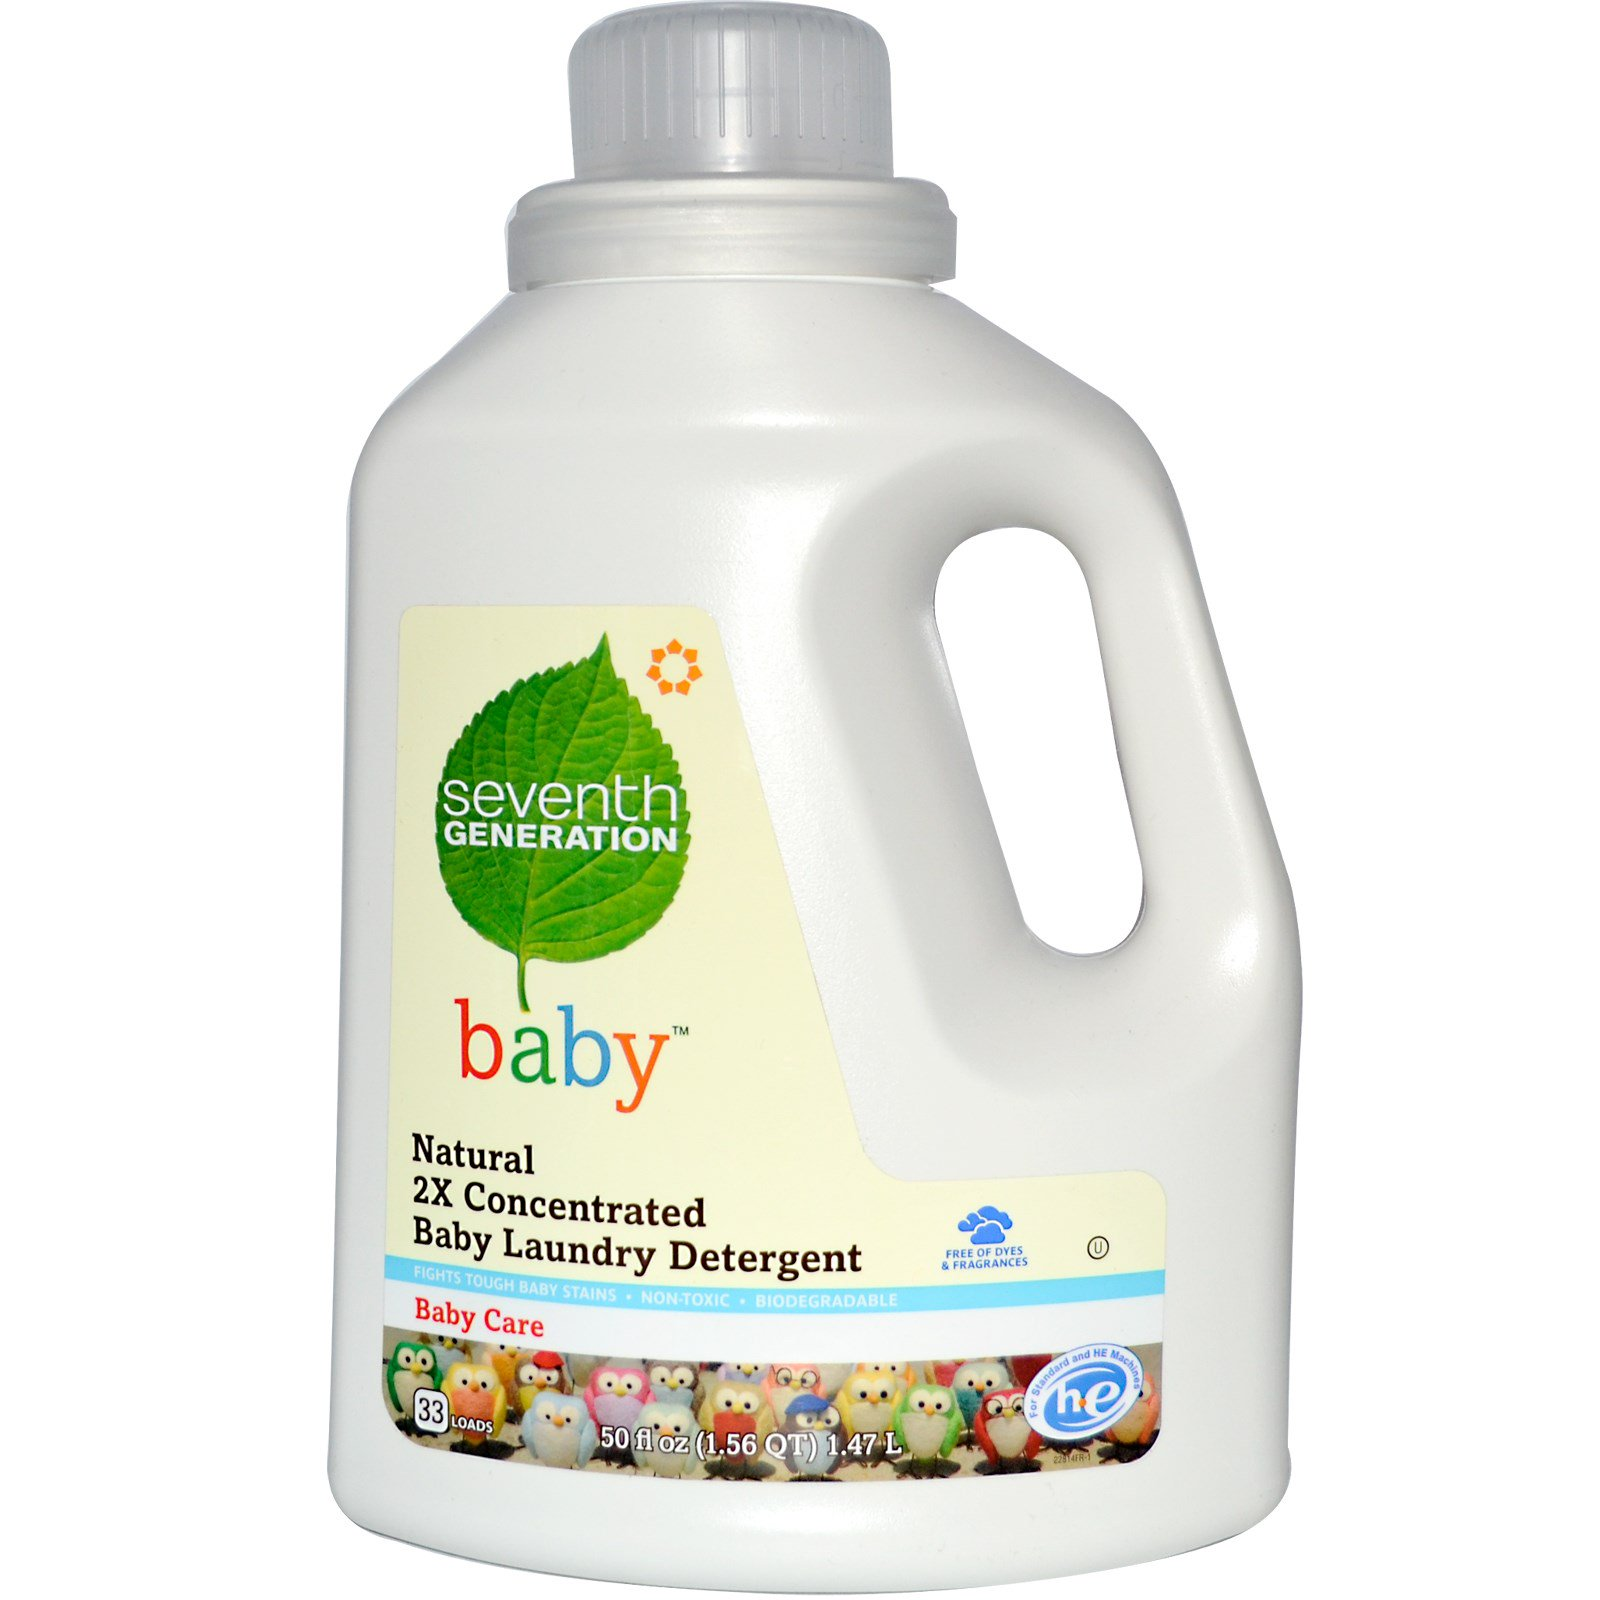 Seventh Generation Natural 2x Concentrated Baby Laundry